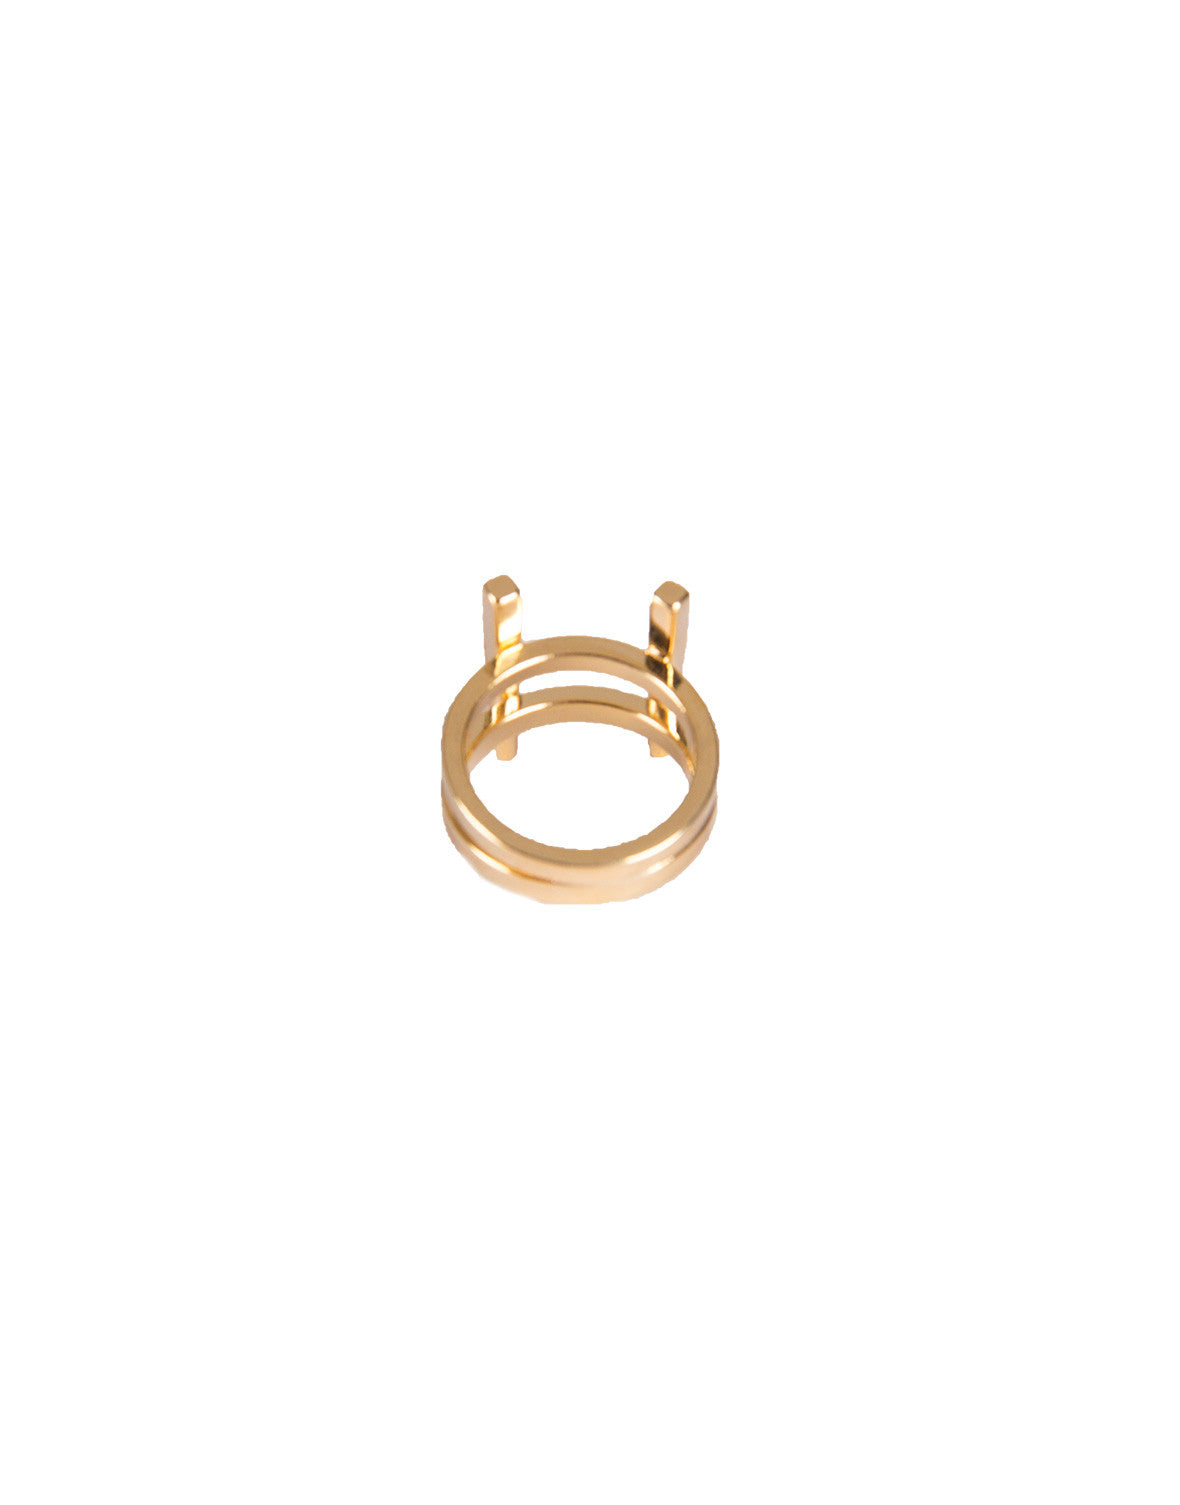 Stacked Double Bar Ring - Ana GR 7588-Gold